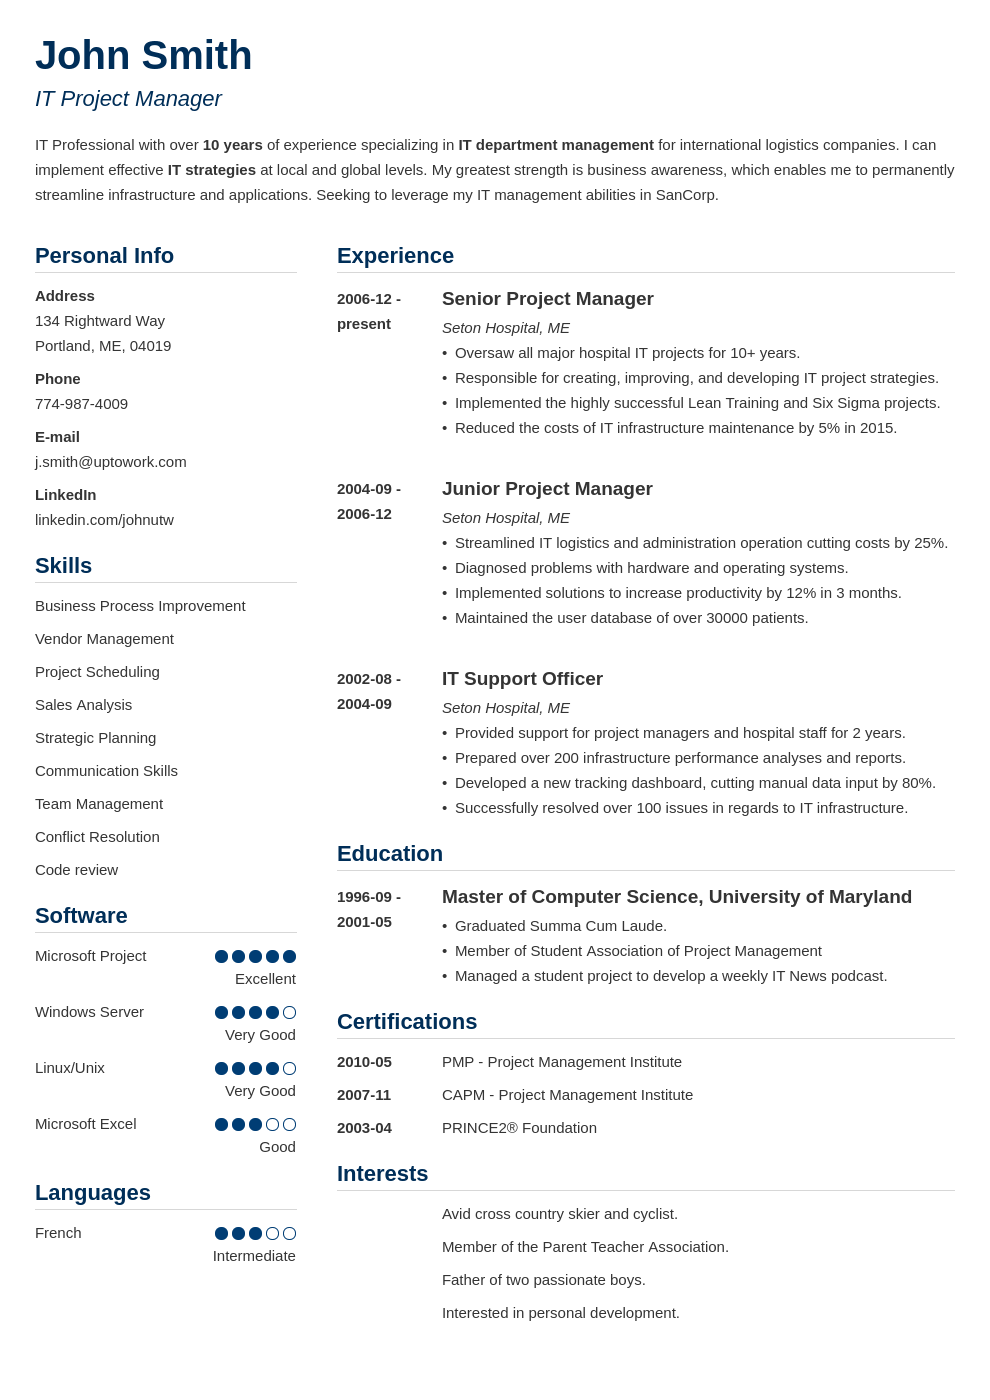 20+ Resume Templates [Fill In, Format, Download in 5 Minutes]